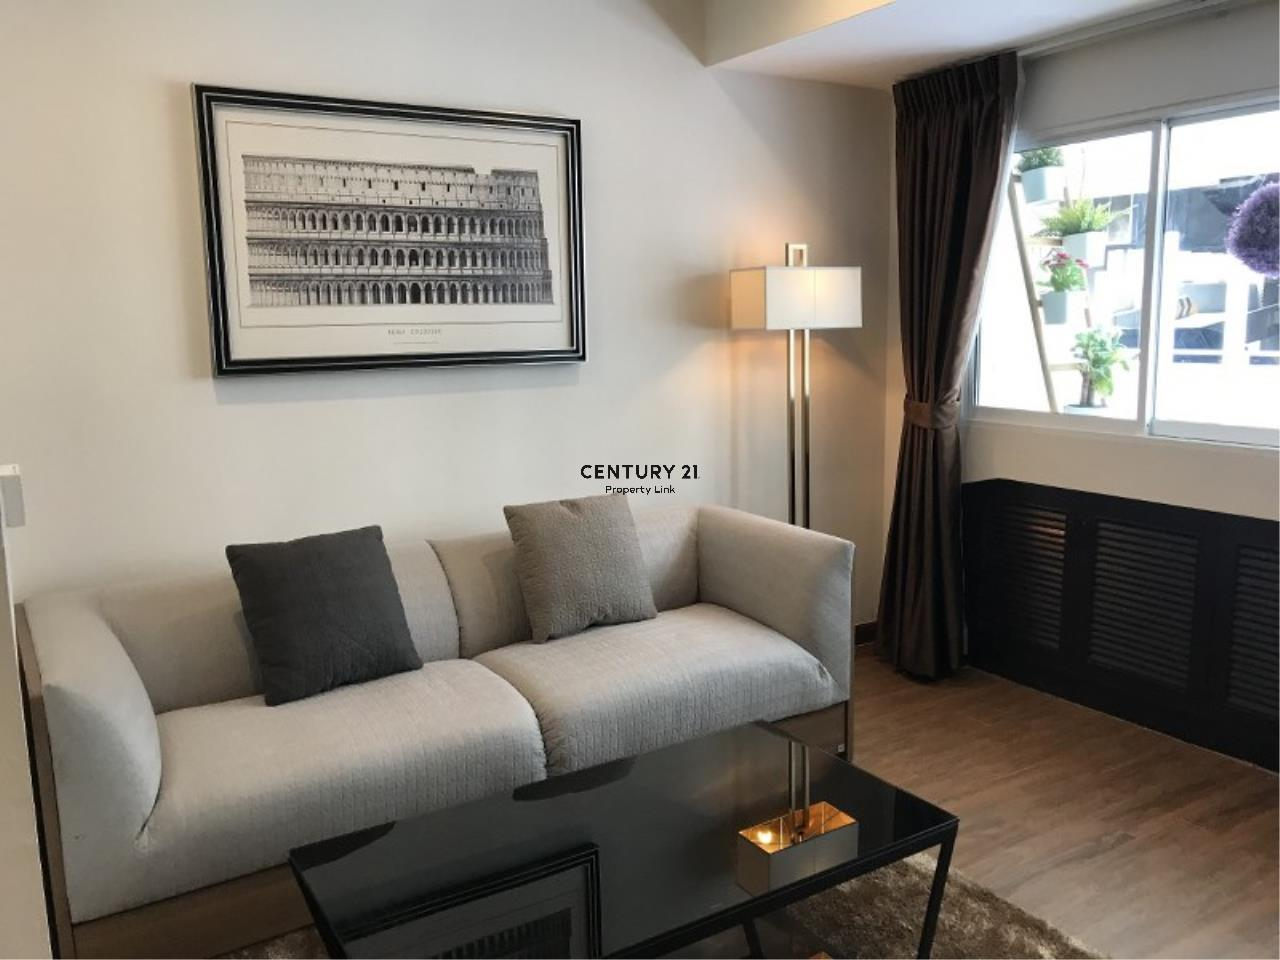 Century21 Property Link Agency's 39-CC-61281 Somkid Place Near BTS Chit Lom Sukhumvit road. Room for Sale Duplex 2 Bedroom Selling price 9MB. 5